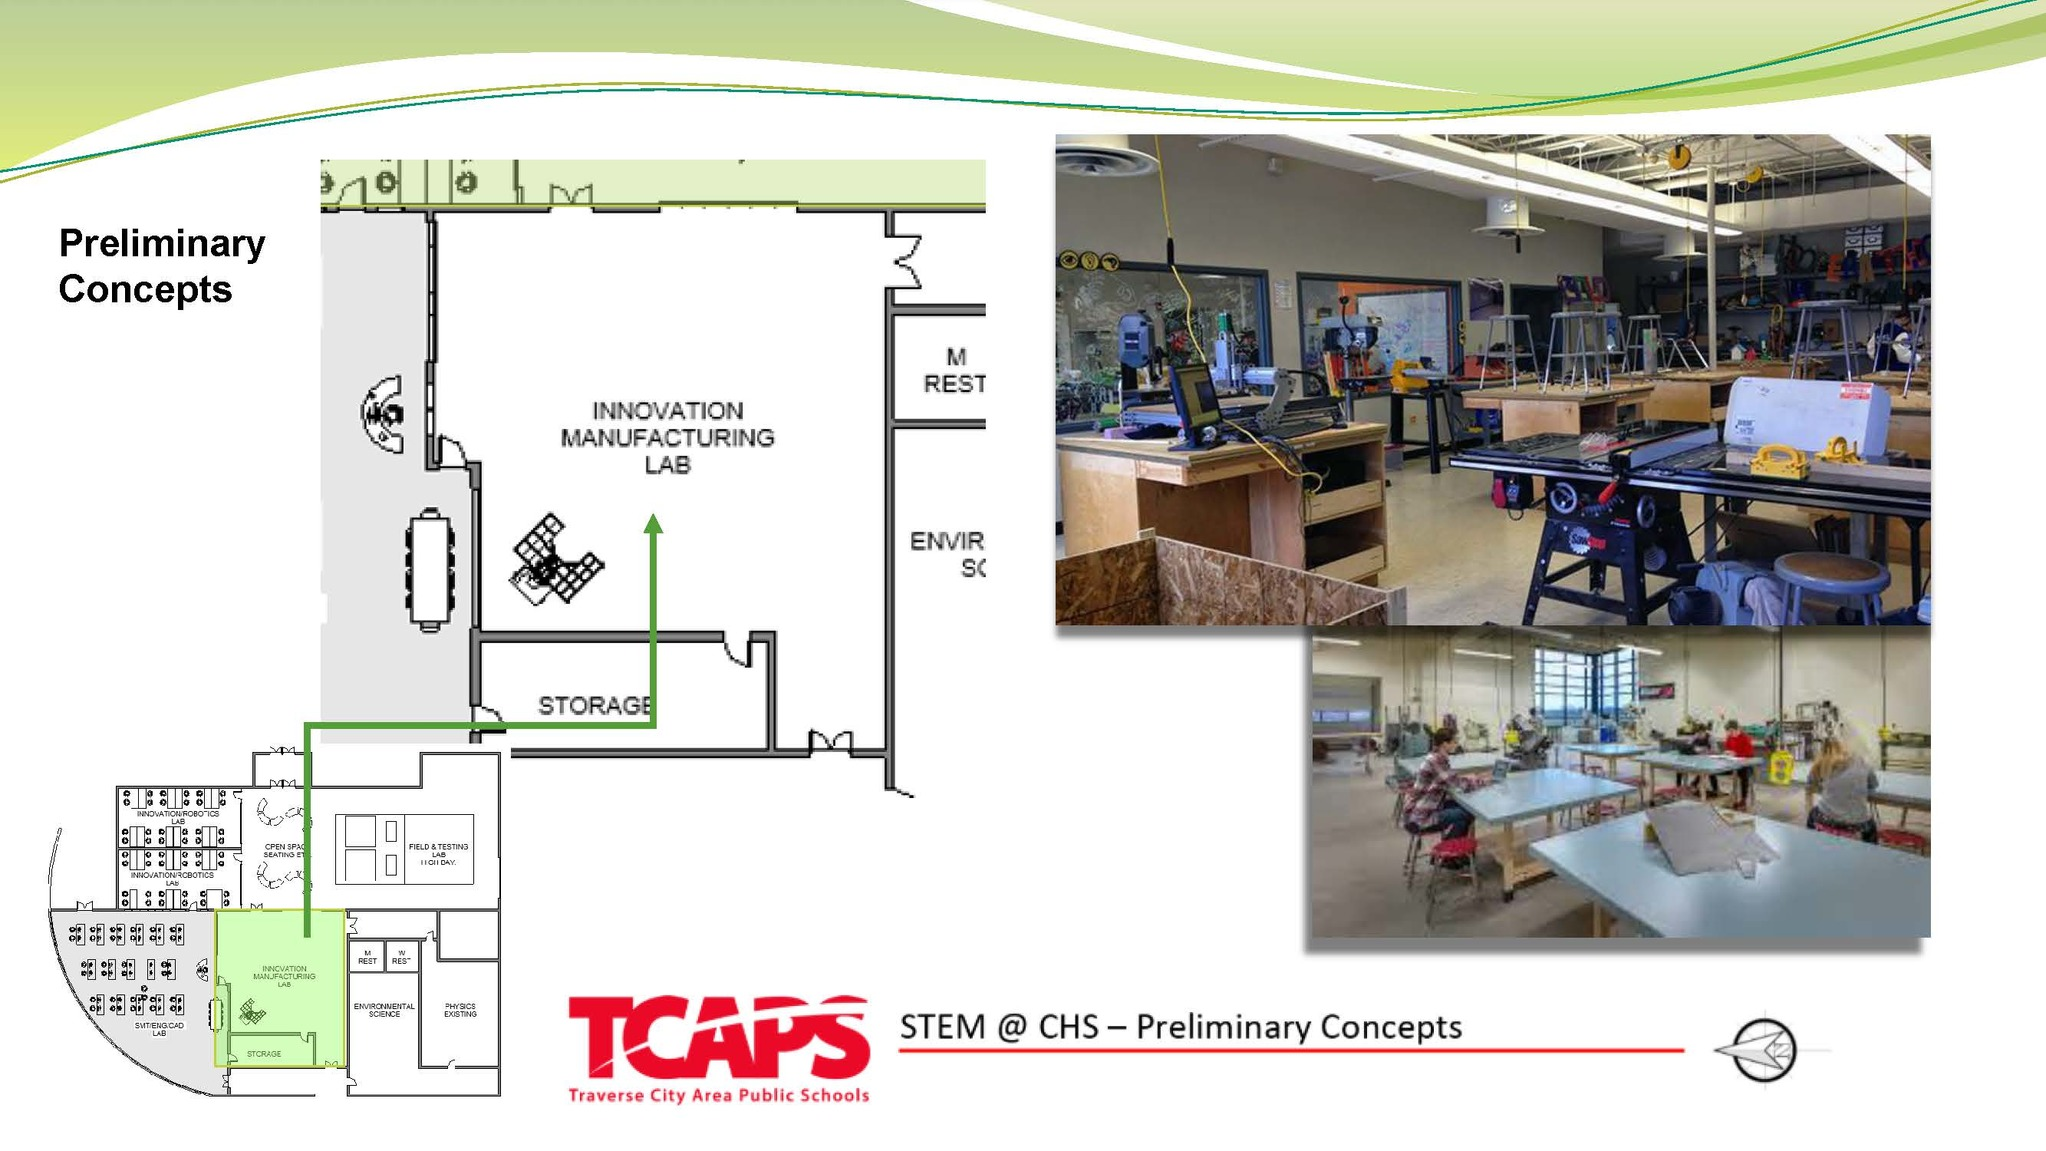 preliminary STEM innovation manufacturing lab concept